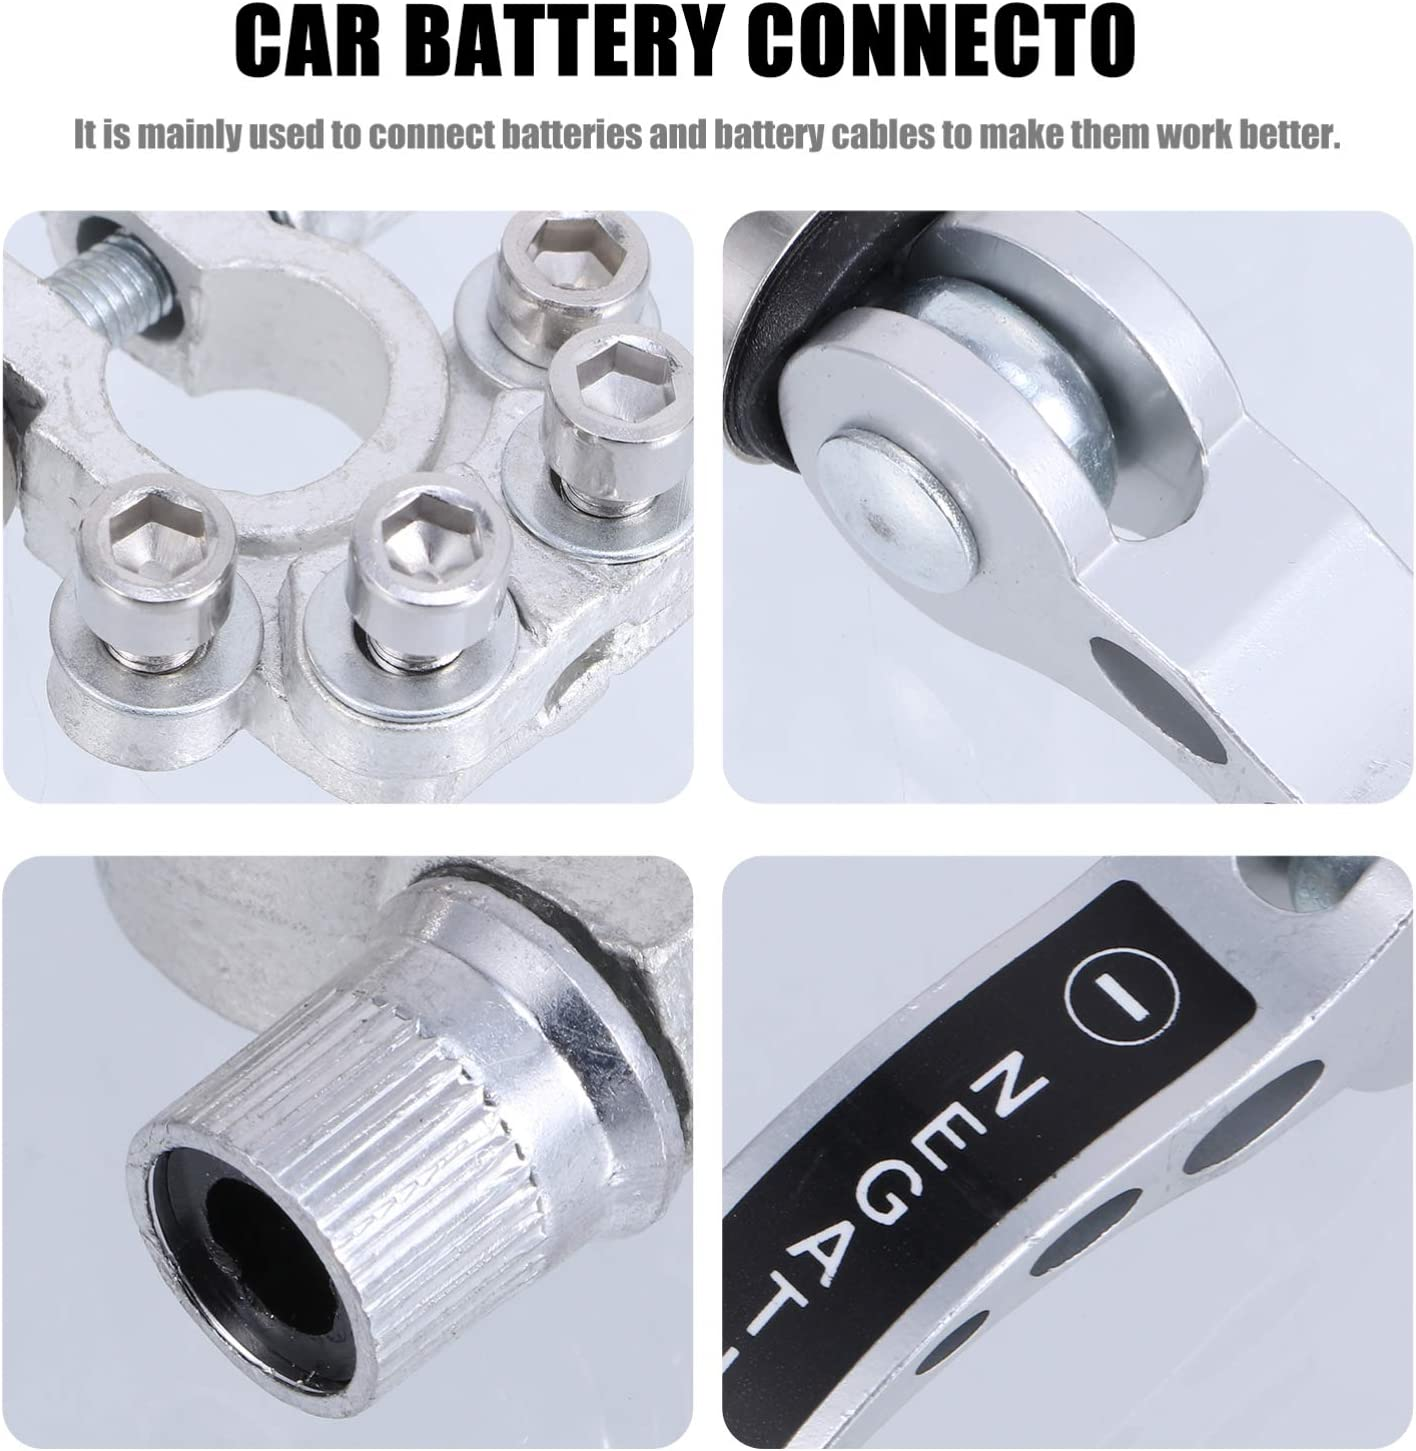 Wakauto Battery Terminals Heavy Duty Positive and Negative Copper Battery Cable Clamp Battery Quick Release Connector for Car Boat Motorcycle Silver